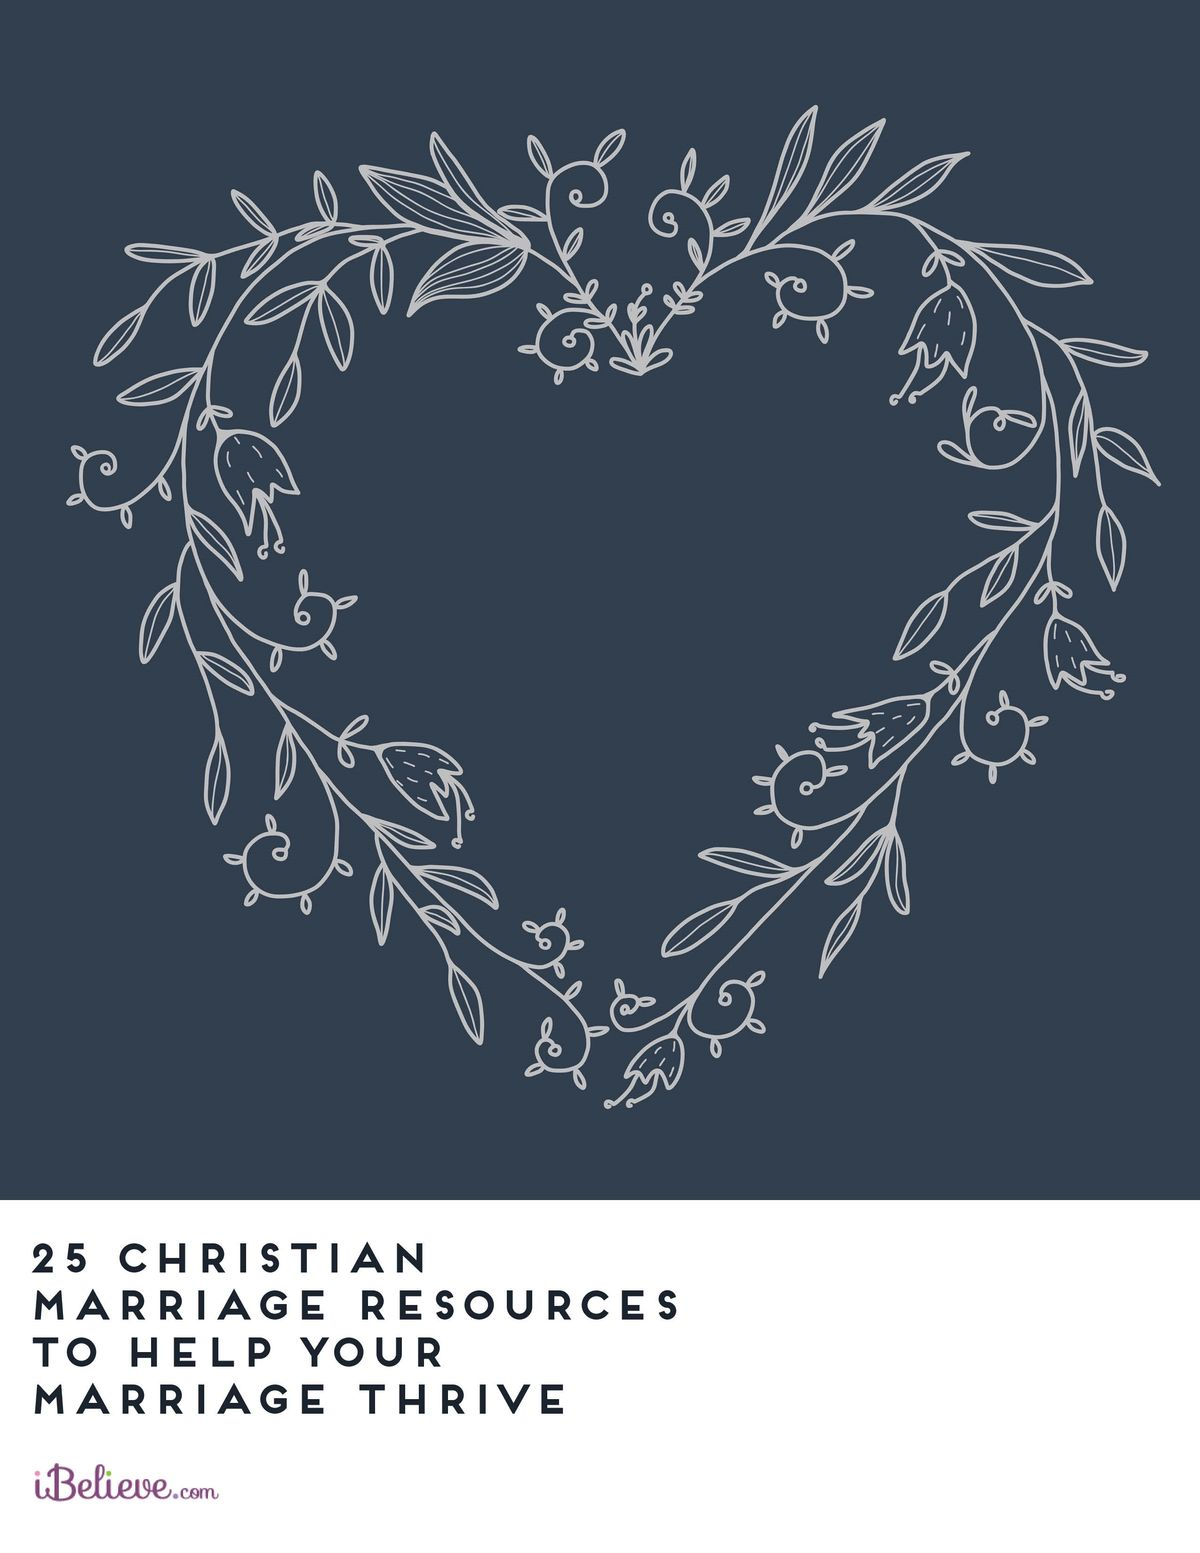 25 Christian Marriage Resources To Help Your Marriage